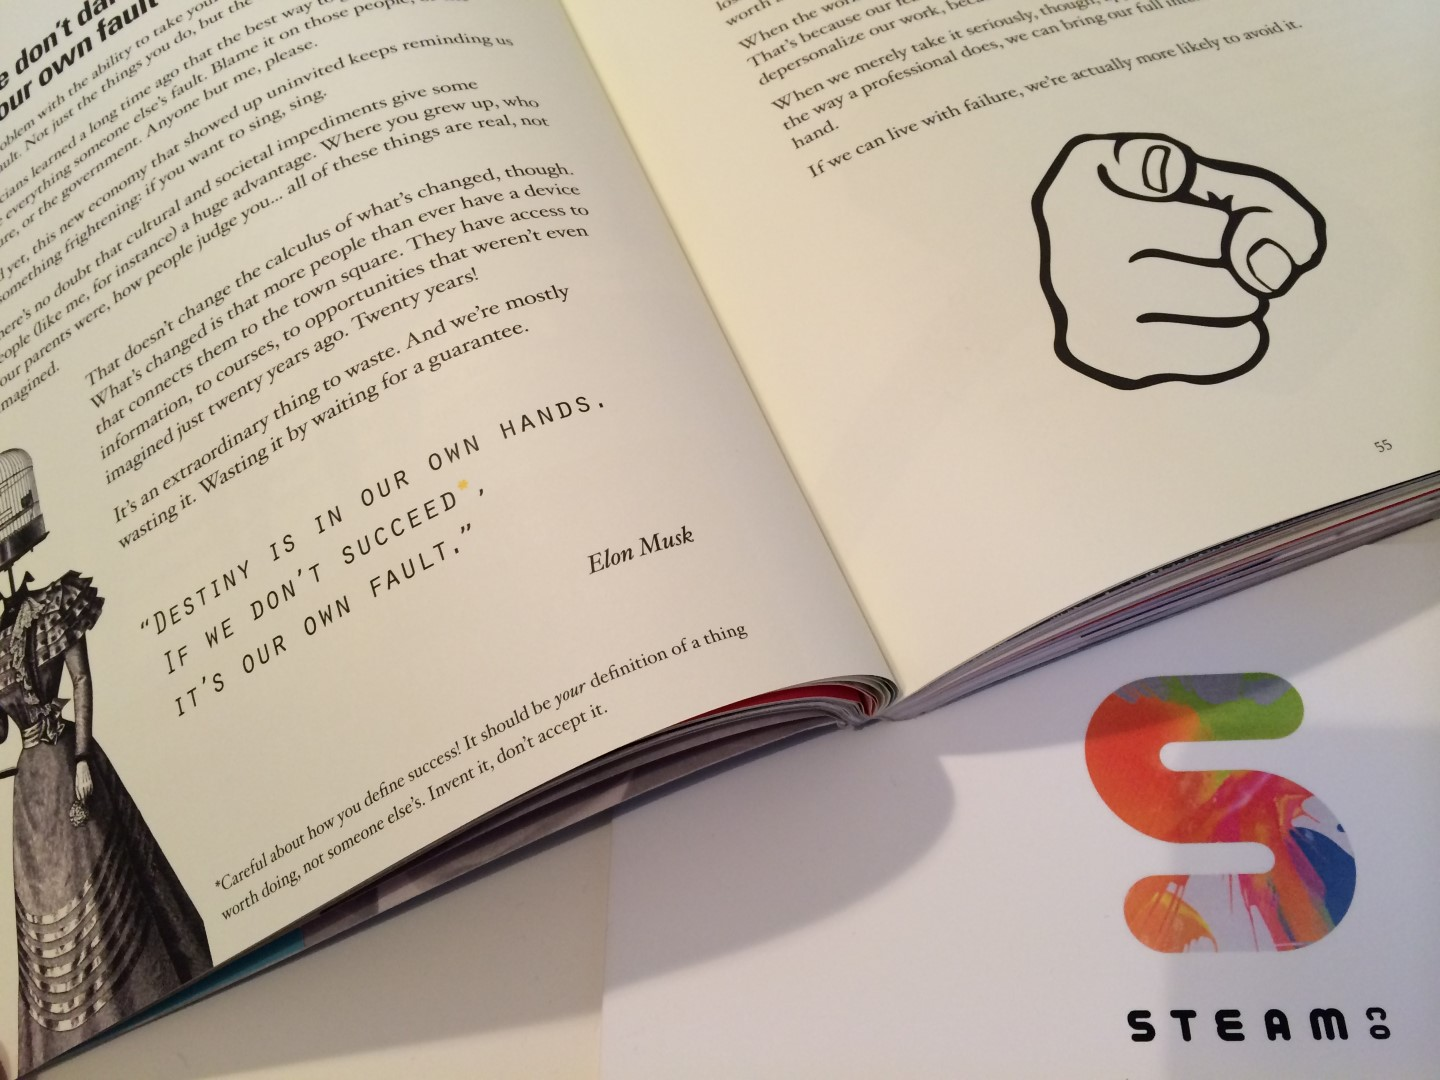 Seth Godin Its your turn book and STEAM Co  (4) (Large).jpg